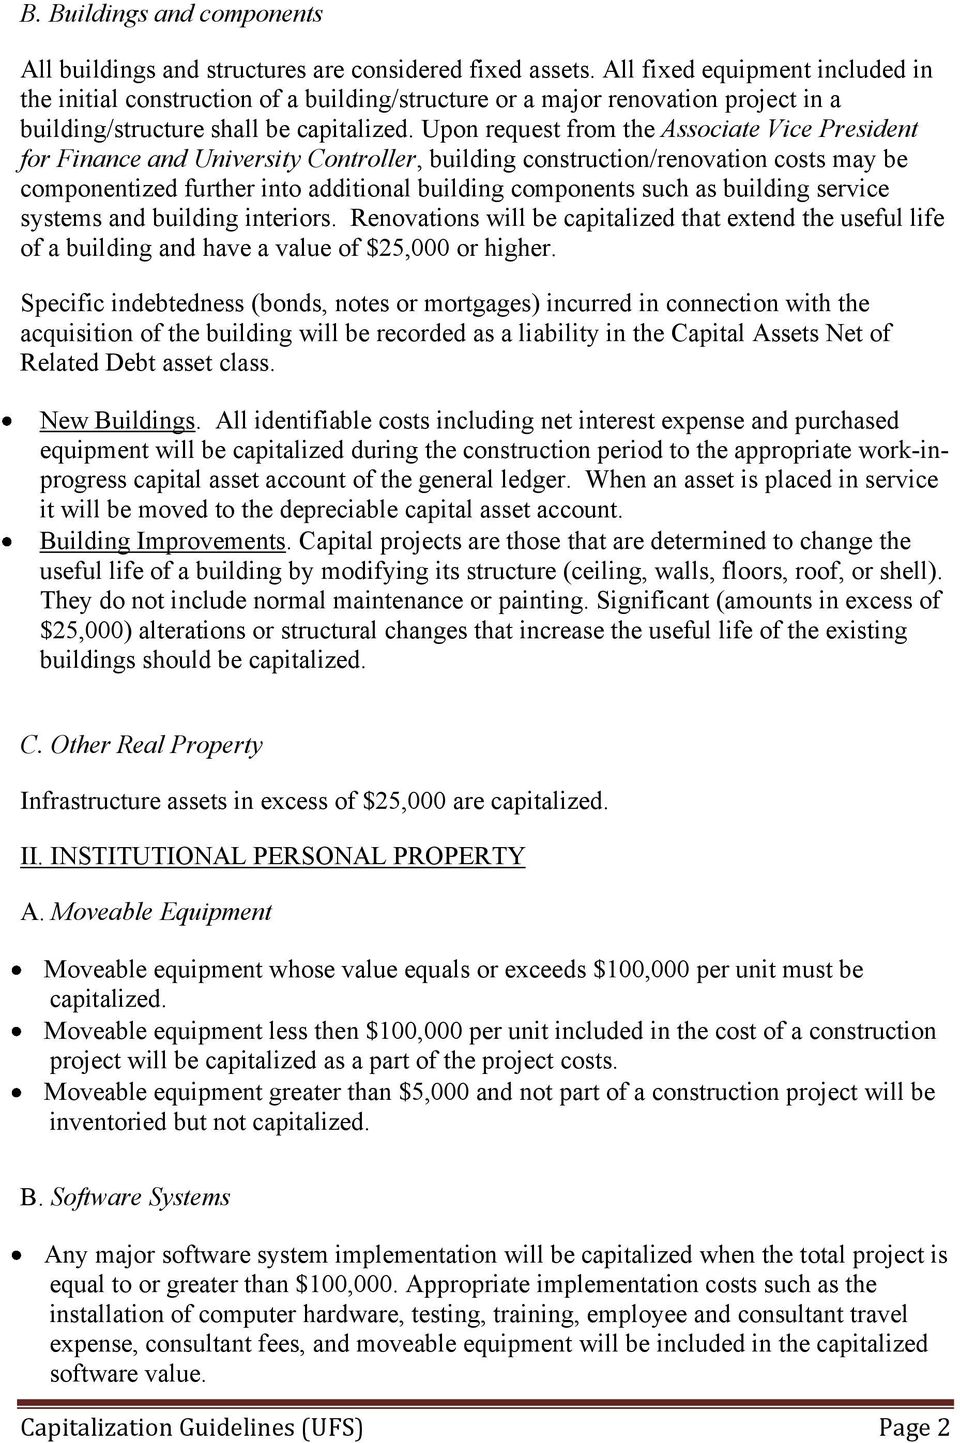 Upon request from the Associate Vice President for Finance and University Controller, building construction/renovation costs may be componentized further into additional building components such as